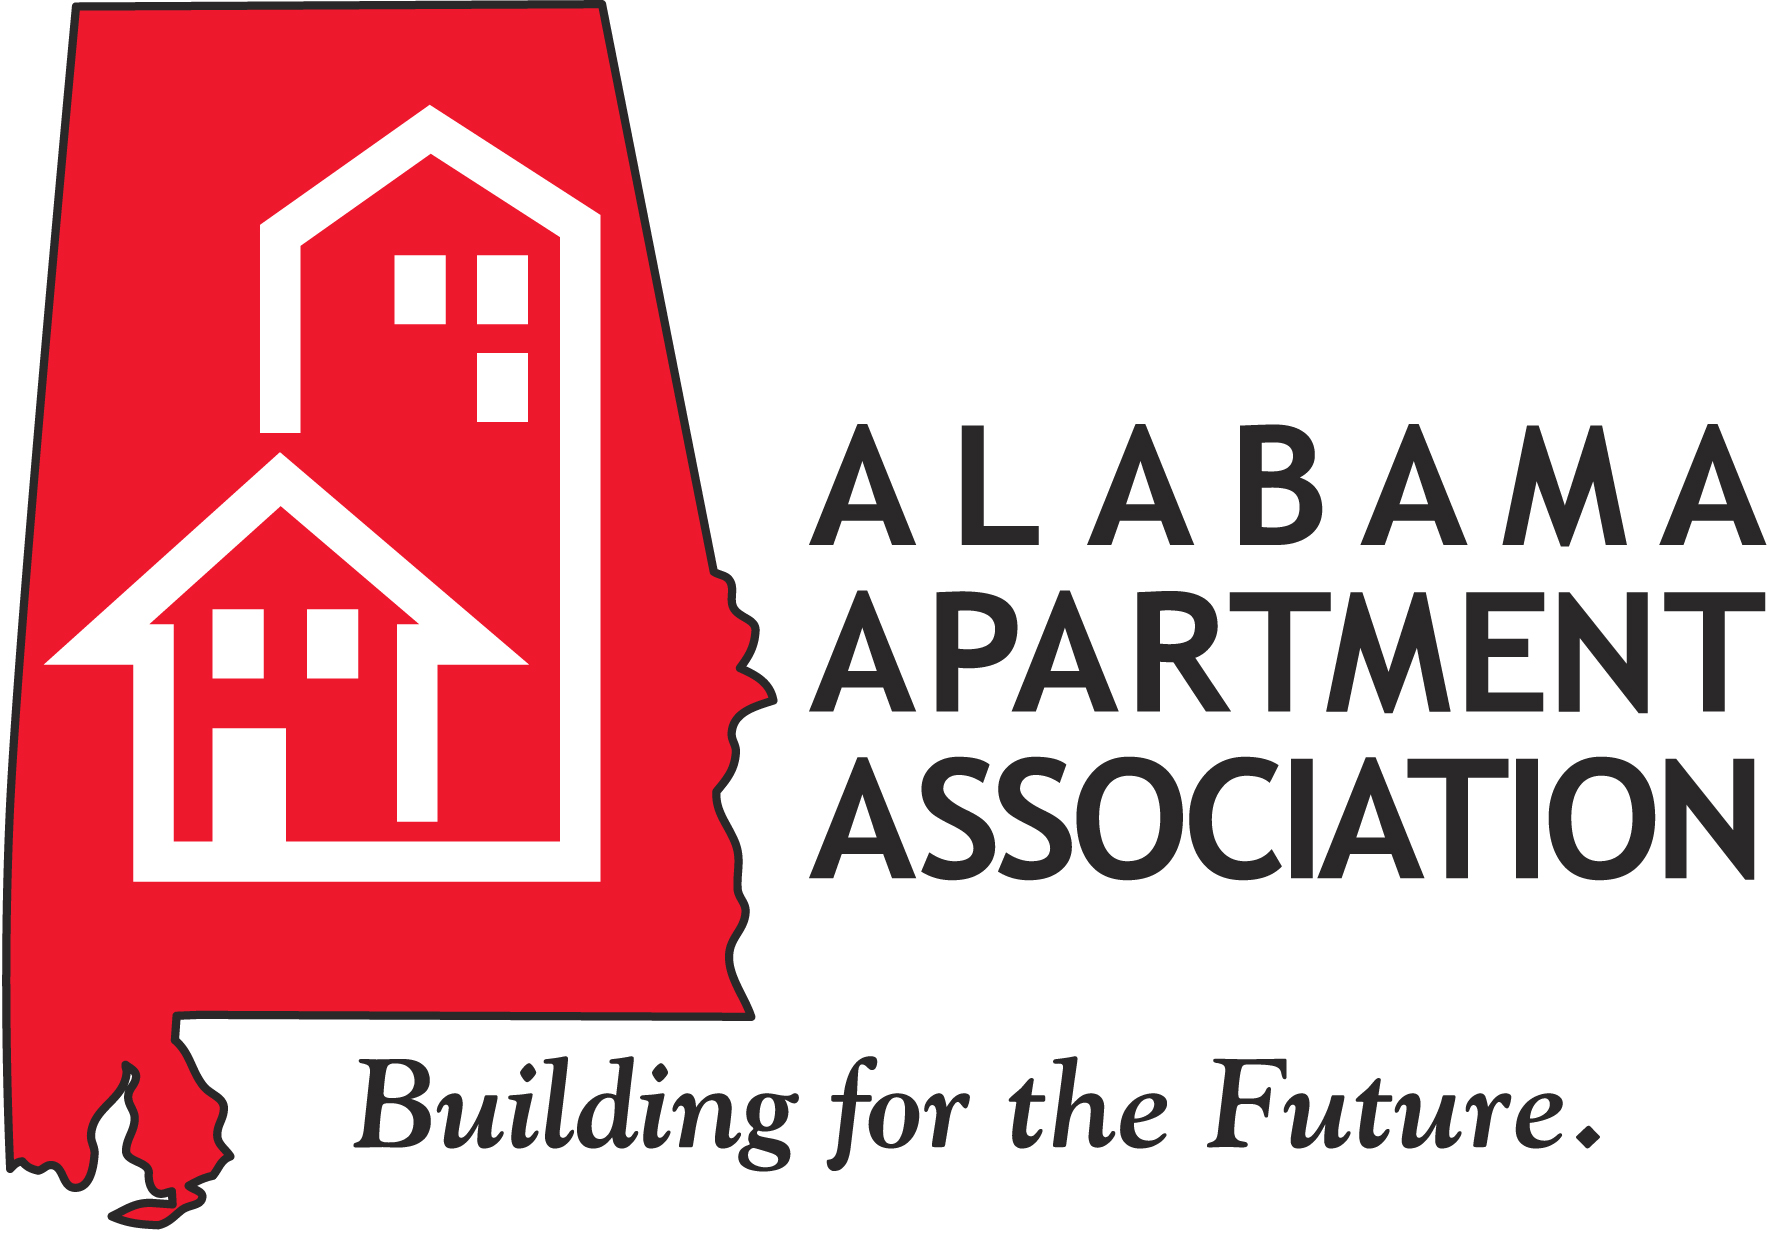 Alabama Apartment Association Logo